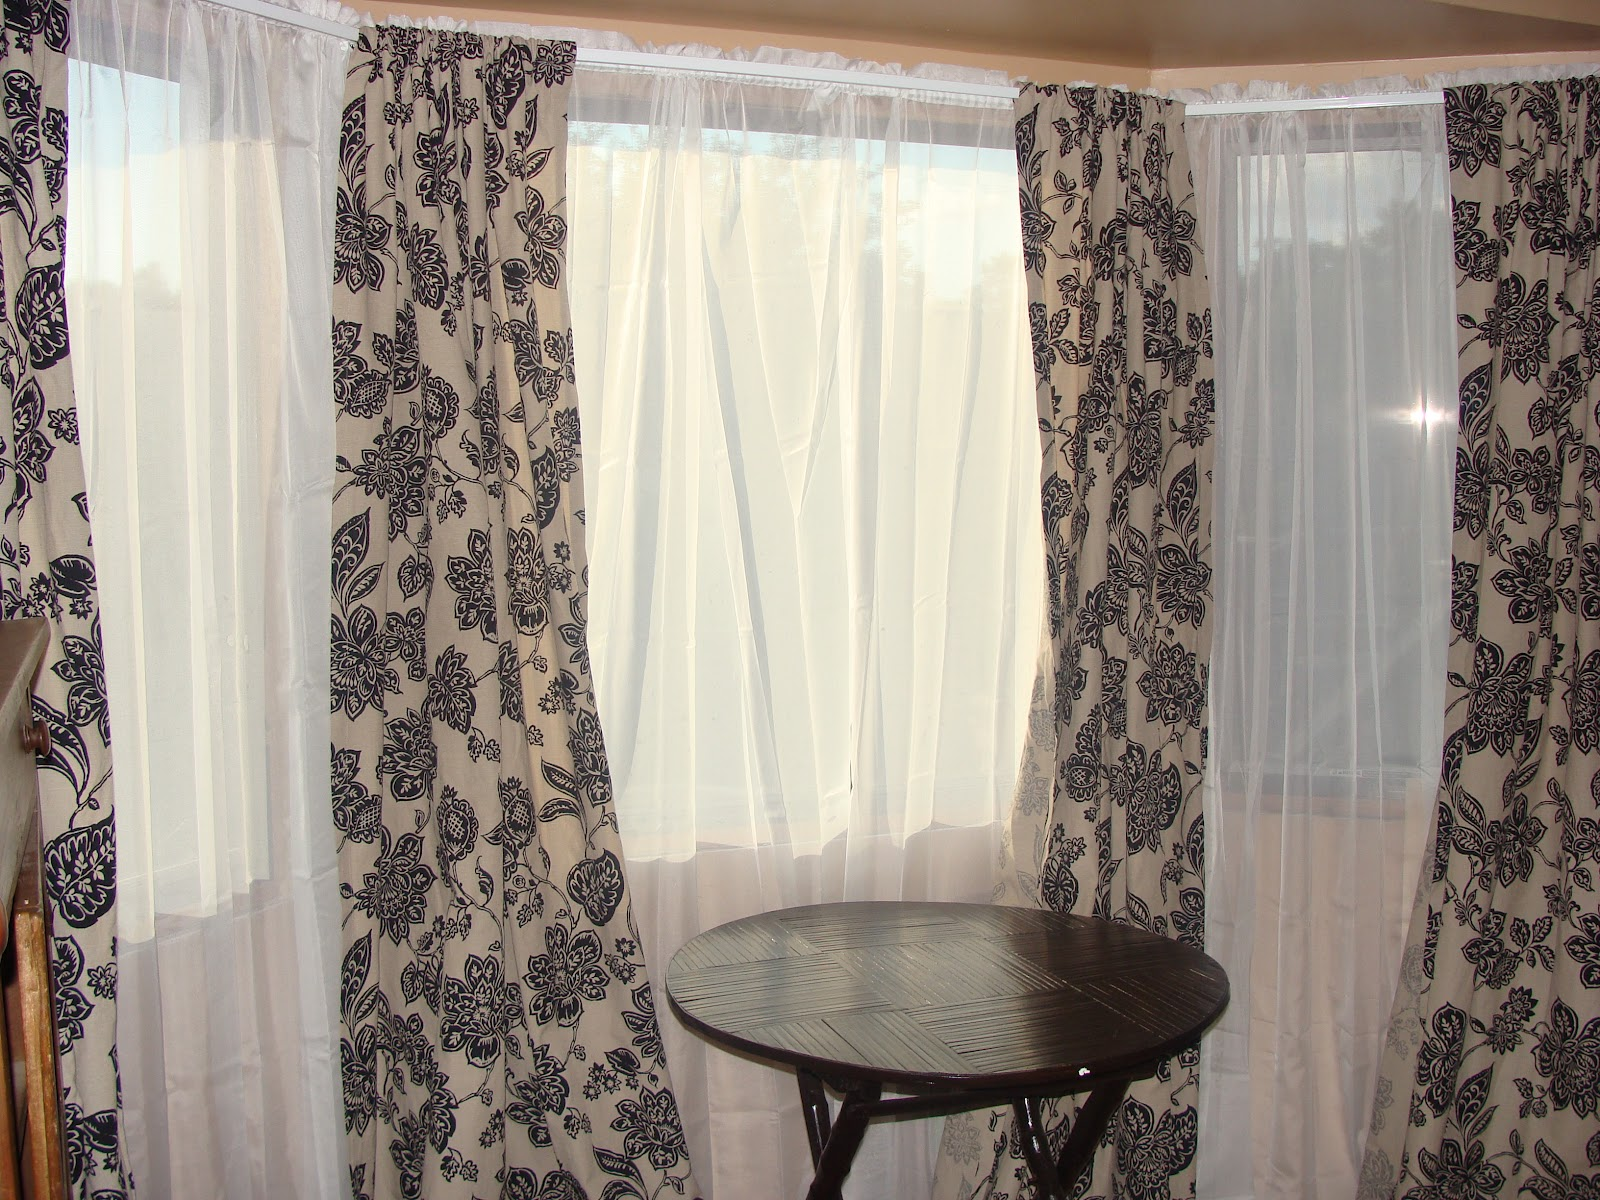 Owen Family Six: Bay Window Curtains